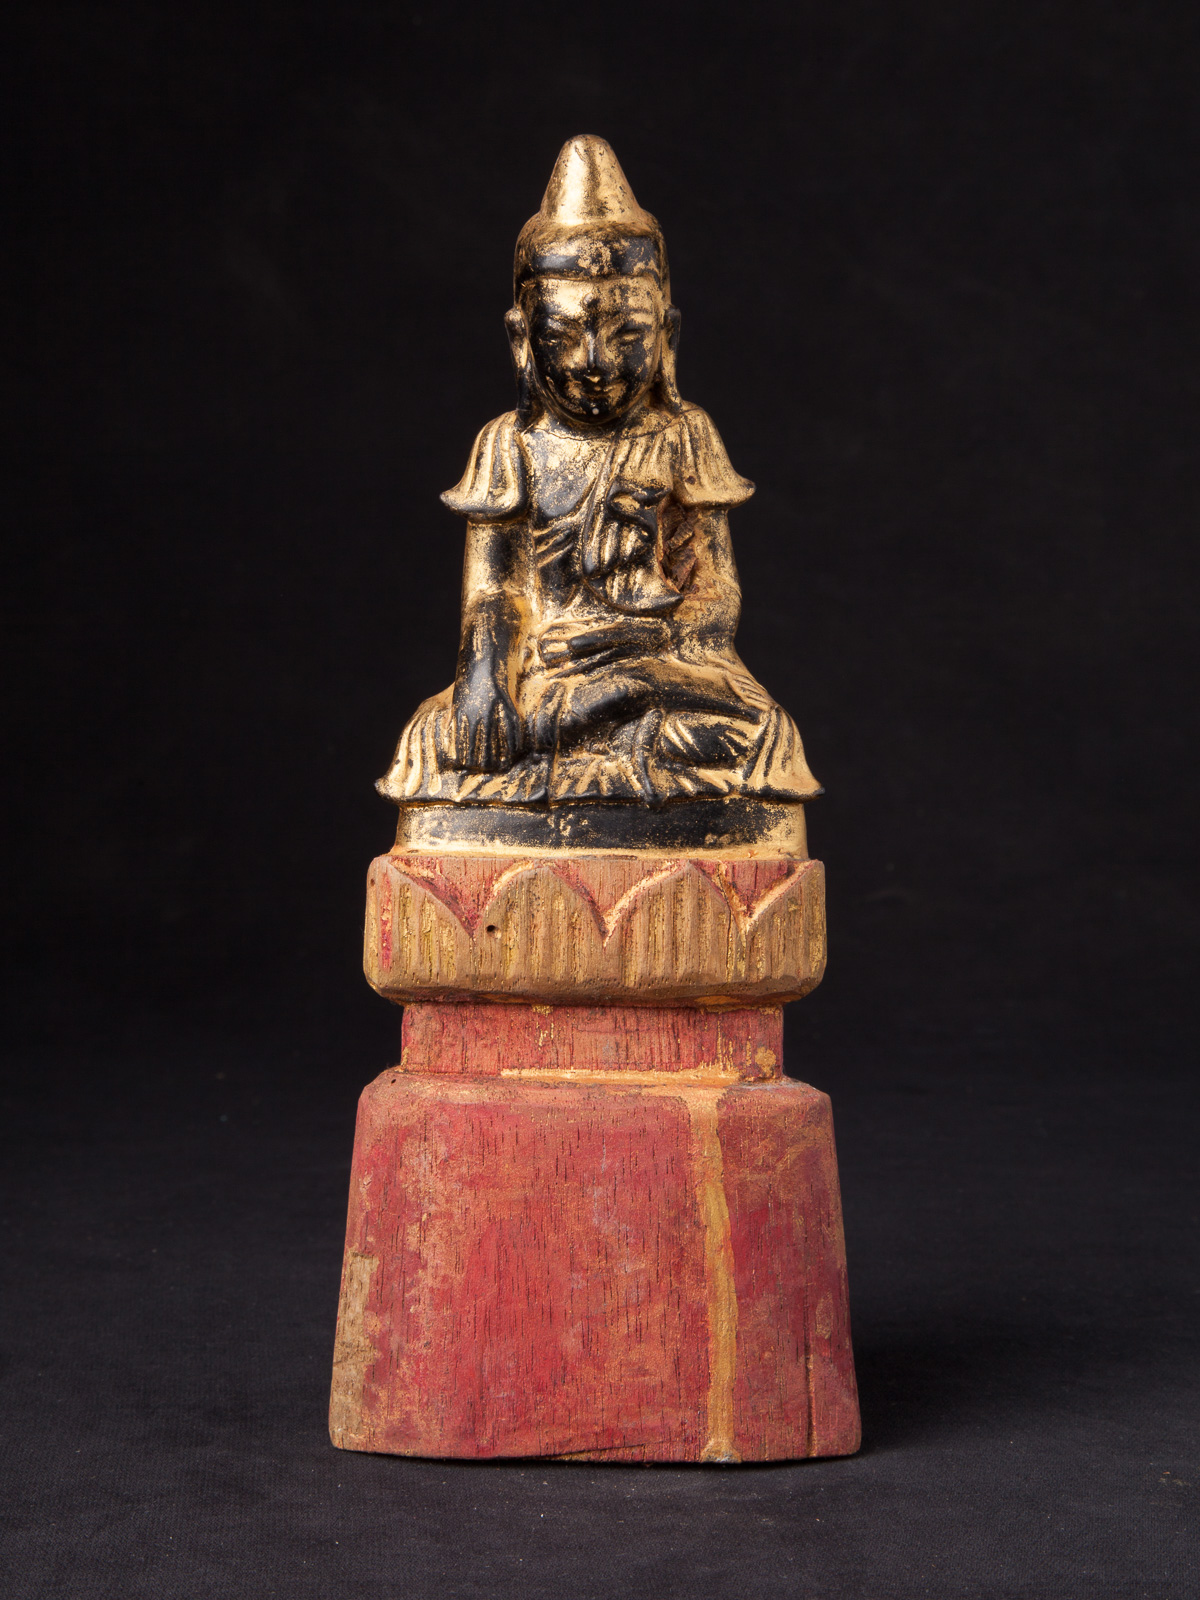 Antique Burmese Shan Buddha statue from Burma